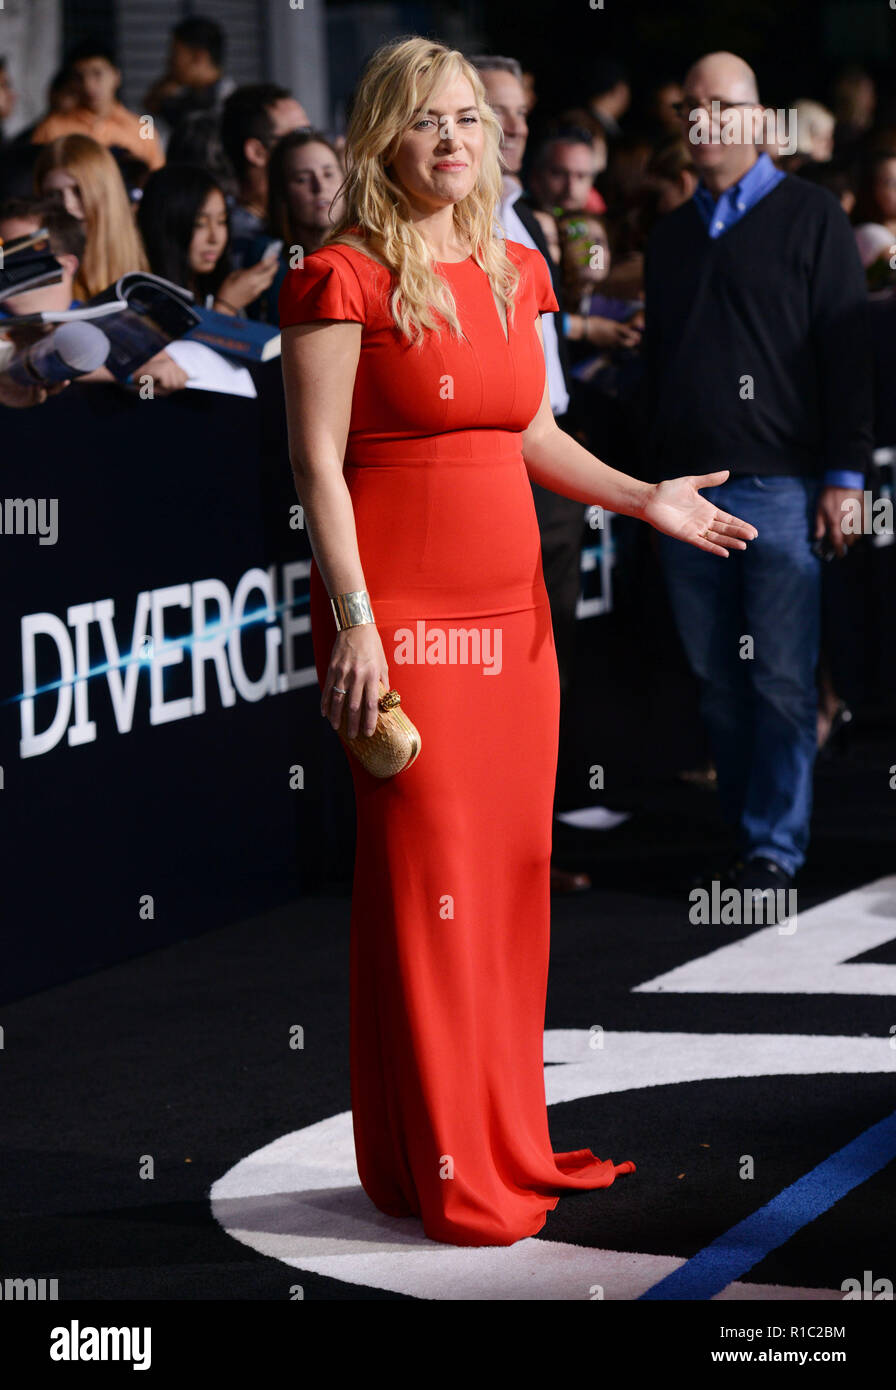 Kate Winslet 122 at the Divergent Premiere at the Westwood